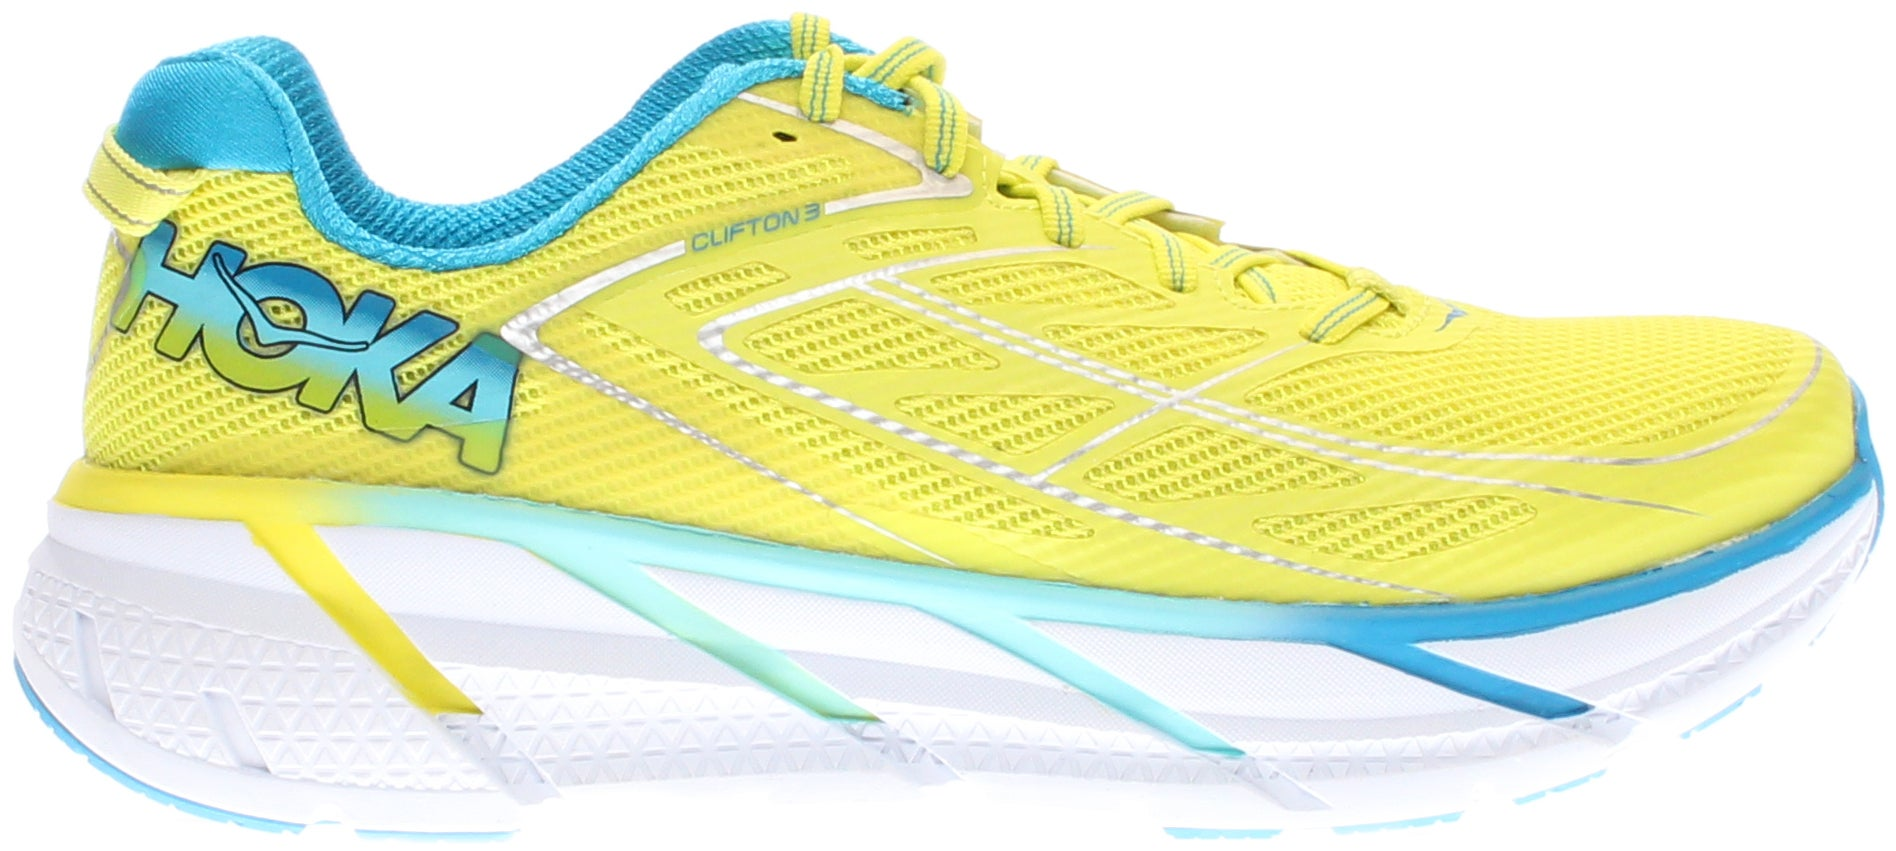 Hoka Clifton 3 Womens - Yellow - Womens The CLIFTON 3 improves upon its decorated heritage with this new release. The upper features a new fit with a more accommodating forefoot, as well as a seamless speed frame construction for light weight and supreme comfort. A similar midsole geometry means that the industry leading ride remains as light and smooth as ever. When cushioning and light weight are your top priorities, look no further.